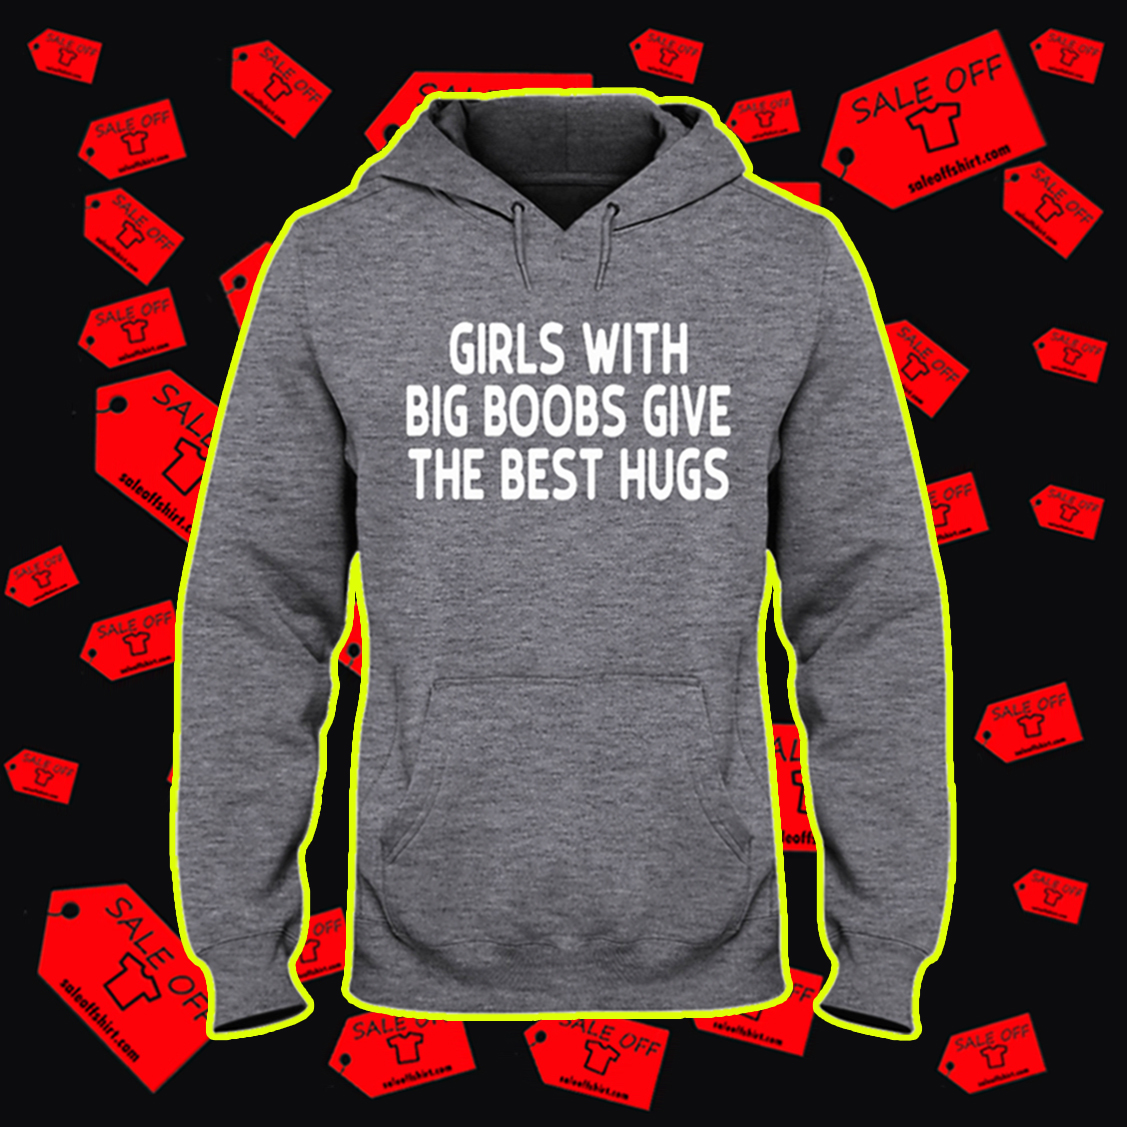 Girls with big boobs give the best hugs hooded sweatshirt